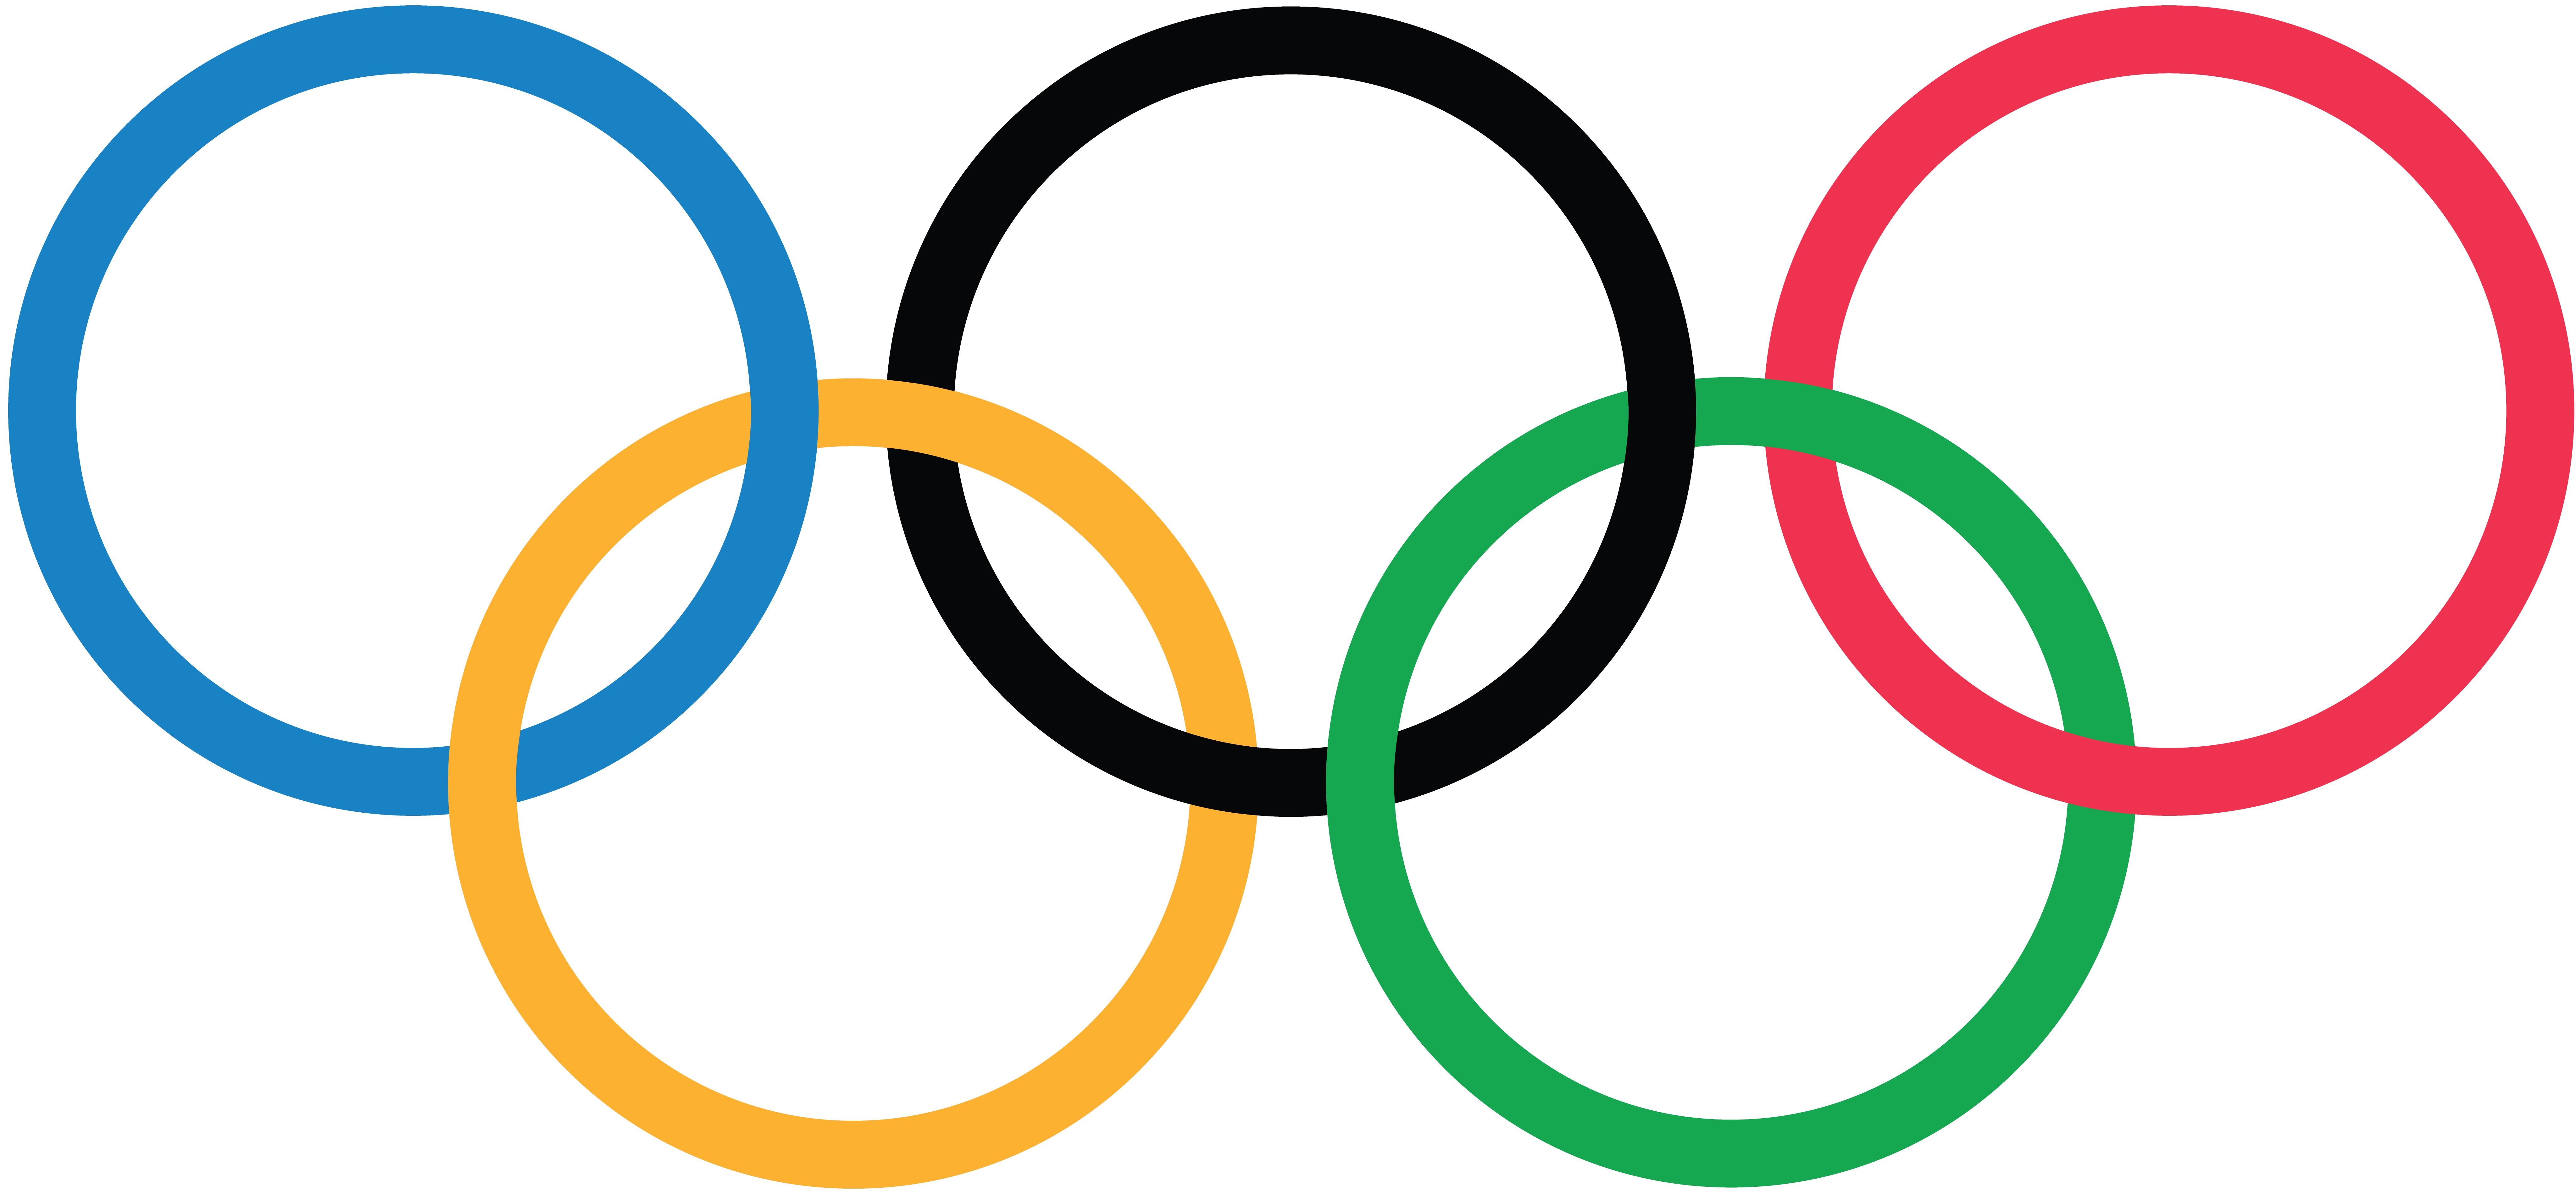 Olympic games logo png. Rings official transparent gallery